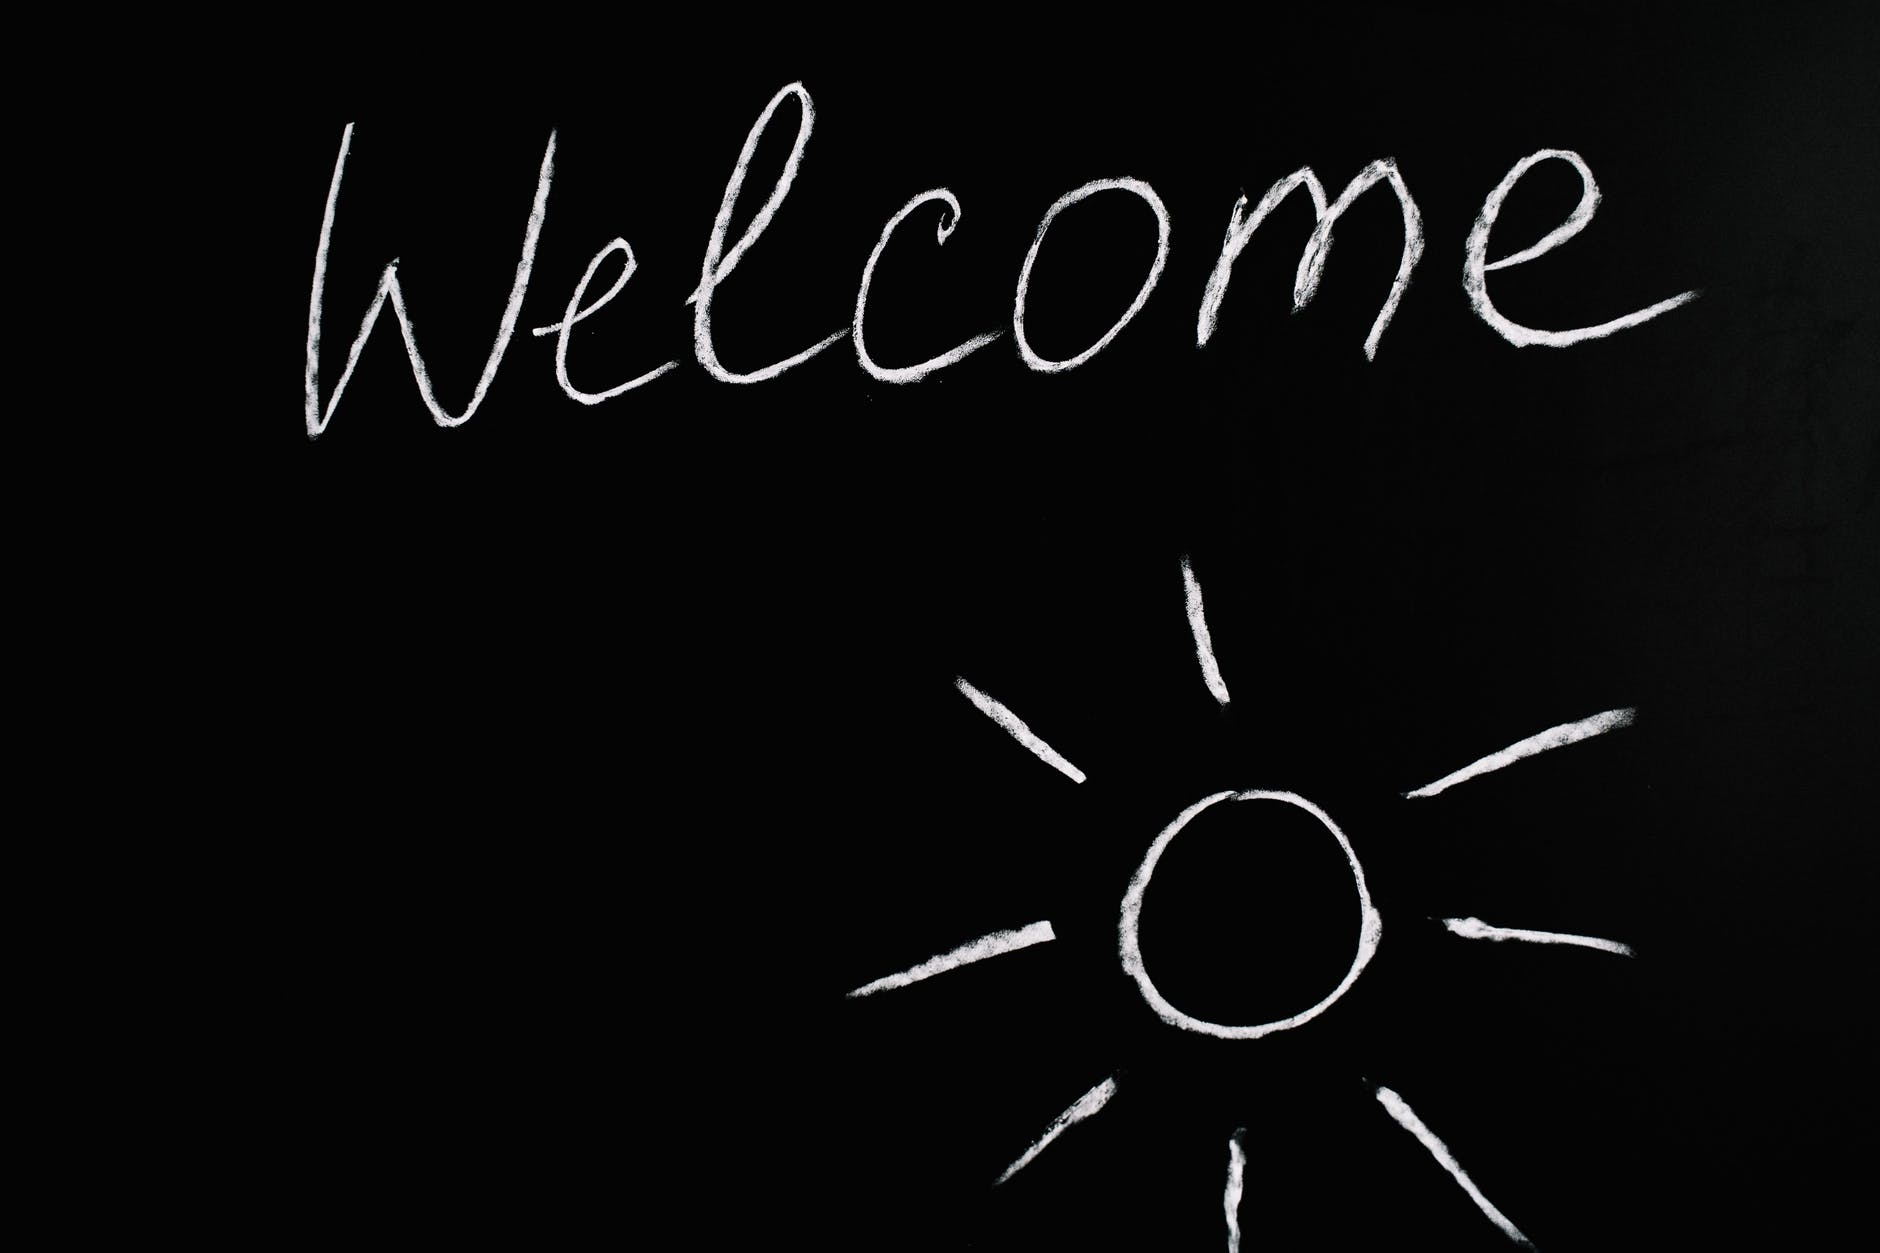 welcome lettering text on black background